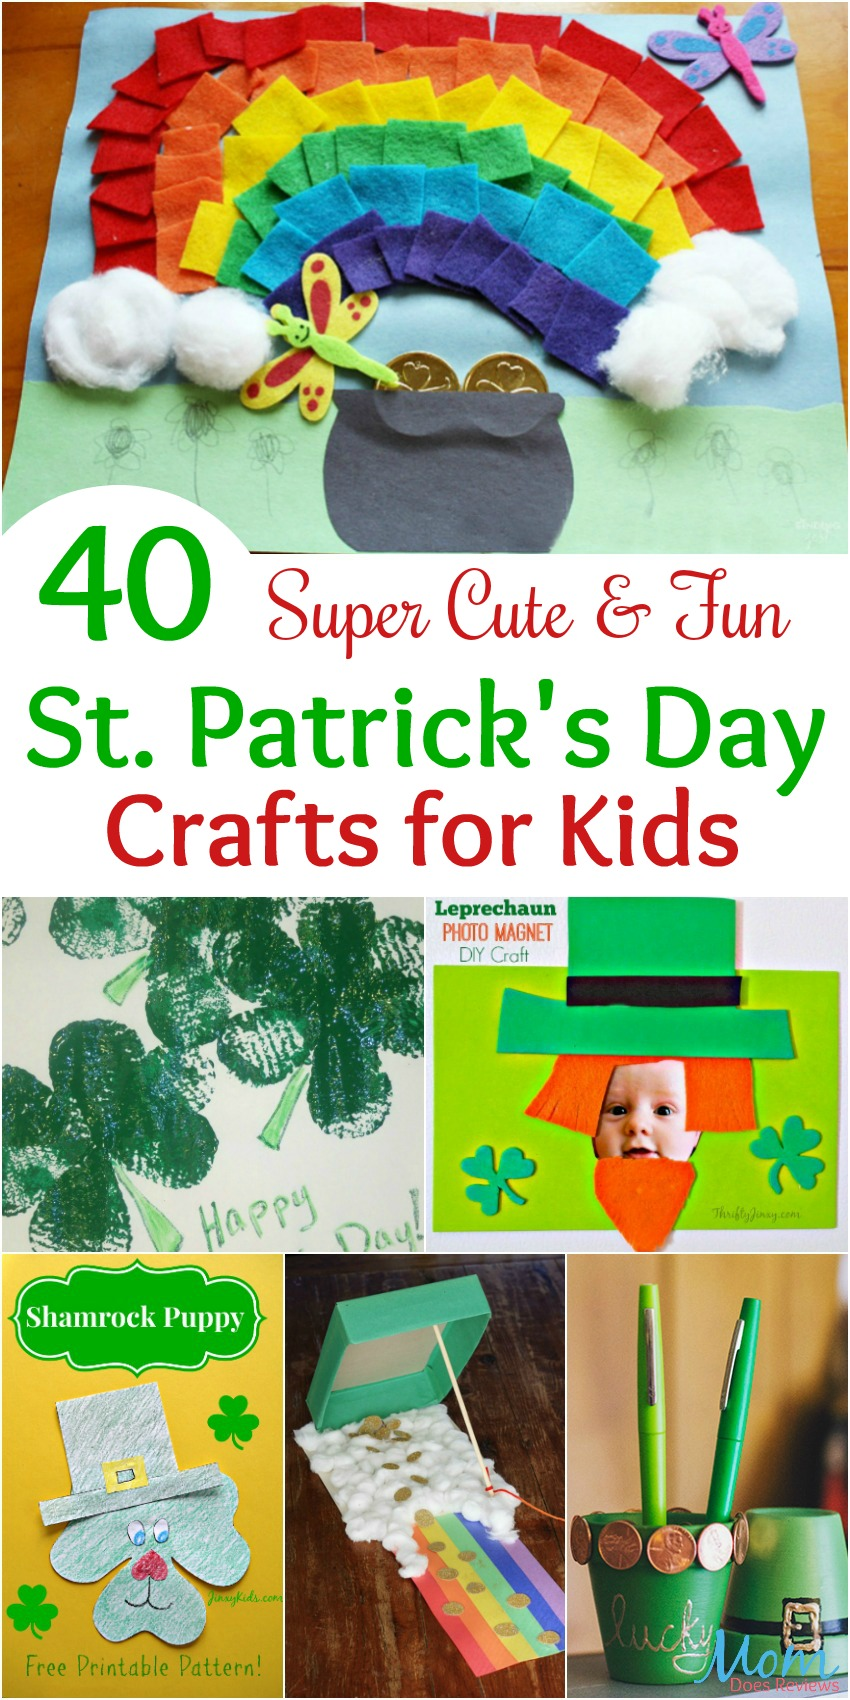 40 St. Patrick's Day Crafts for Kids banner